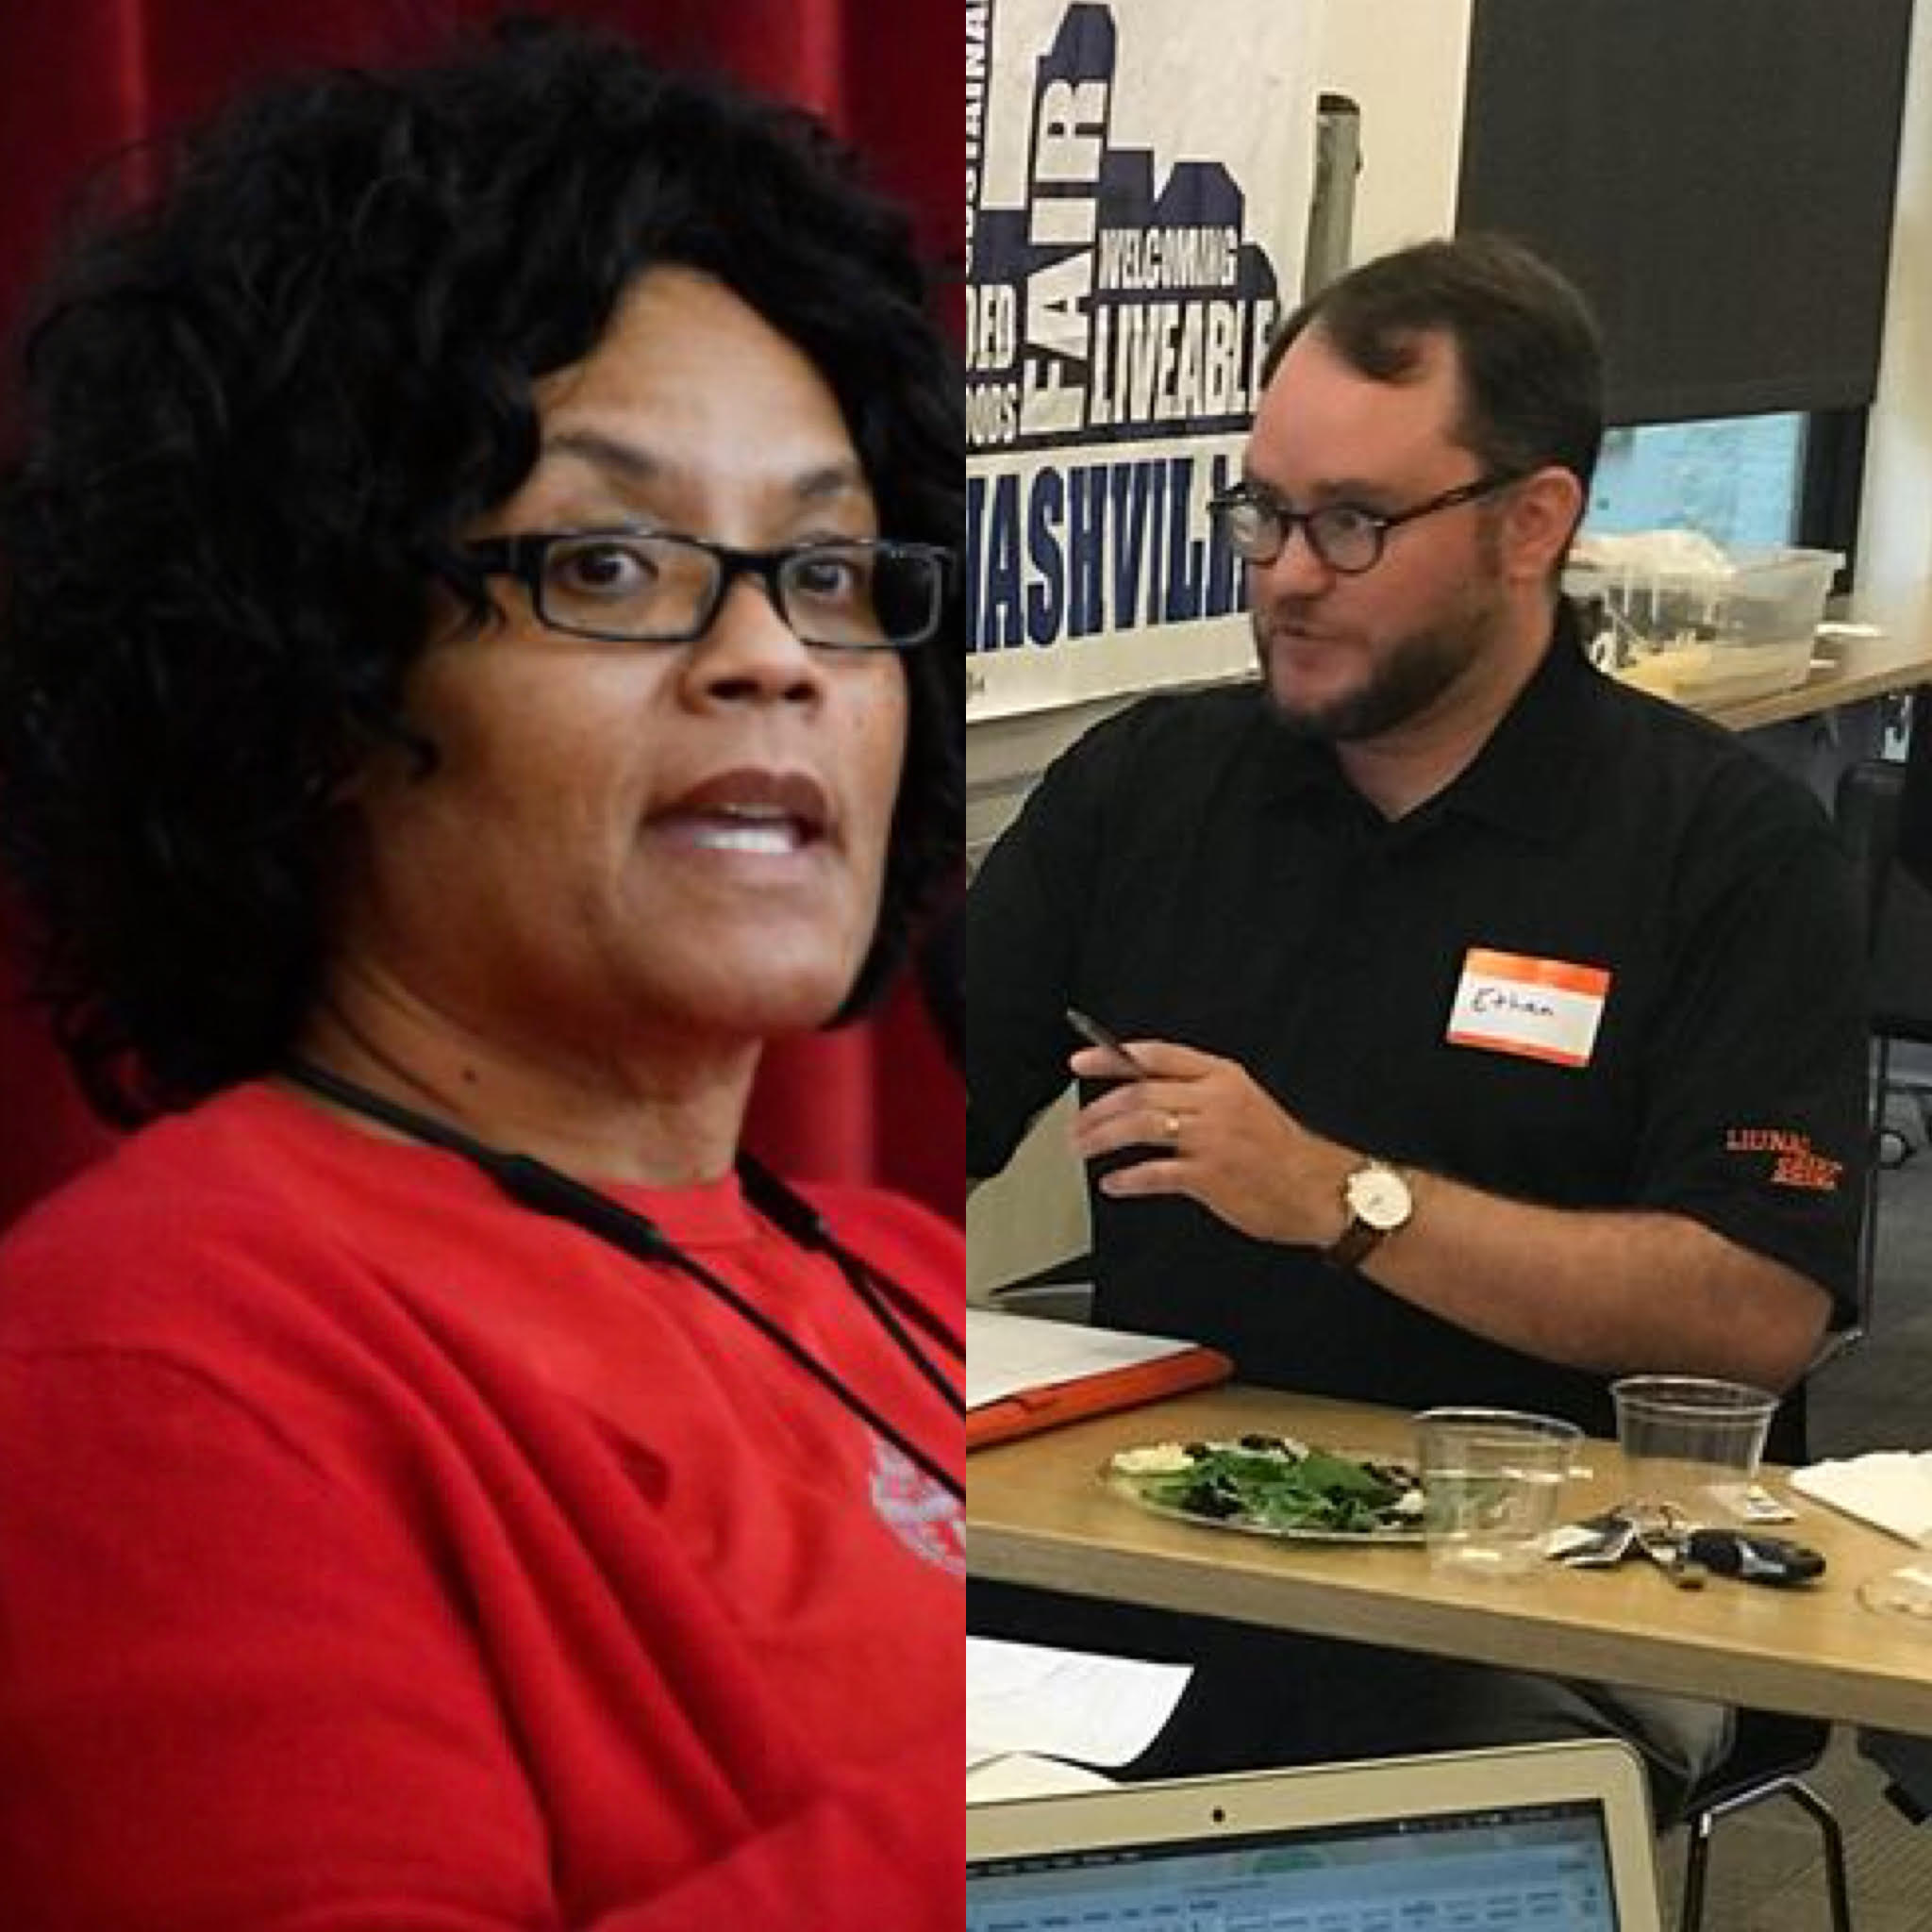 Guests: - Vonda McDaniel and Ethan Link